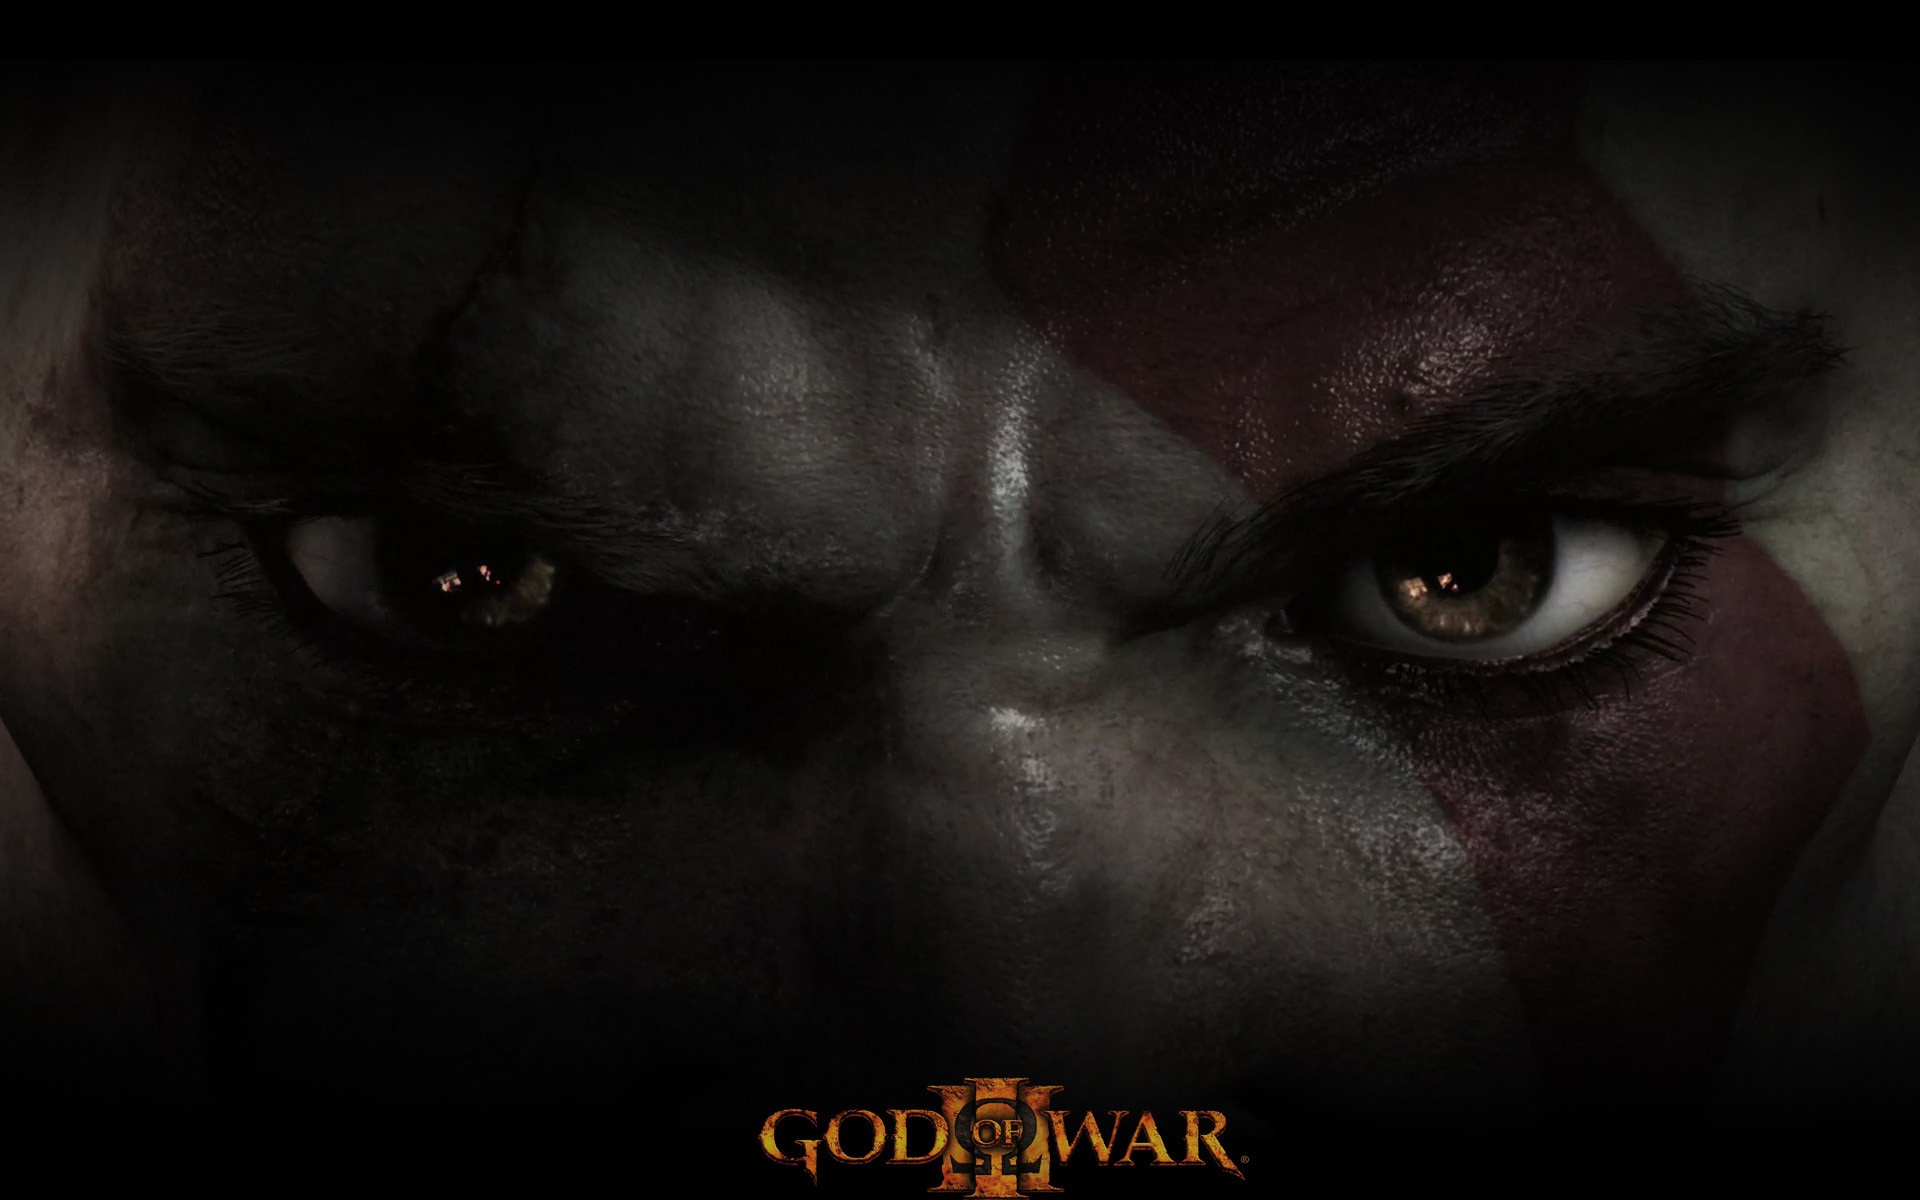 1920x1200 God Of War: Ascension HD Wallpapers Backgrounds Wallpaper God Of War Images Wallpapers  Wallpapers)